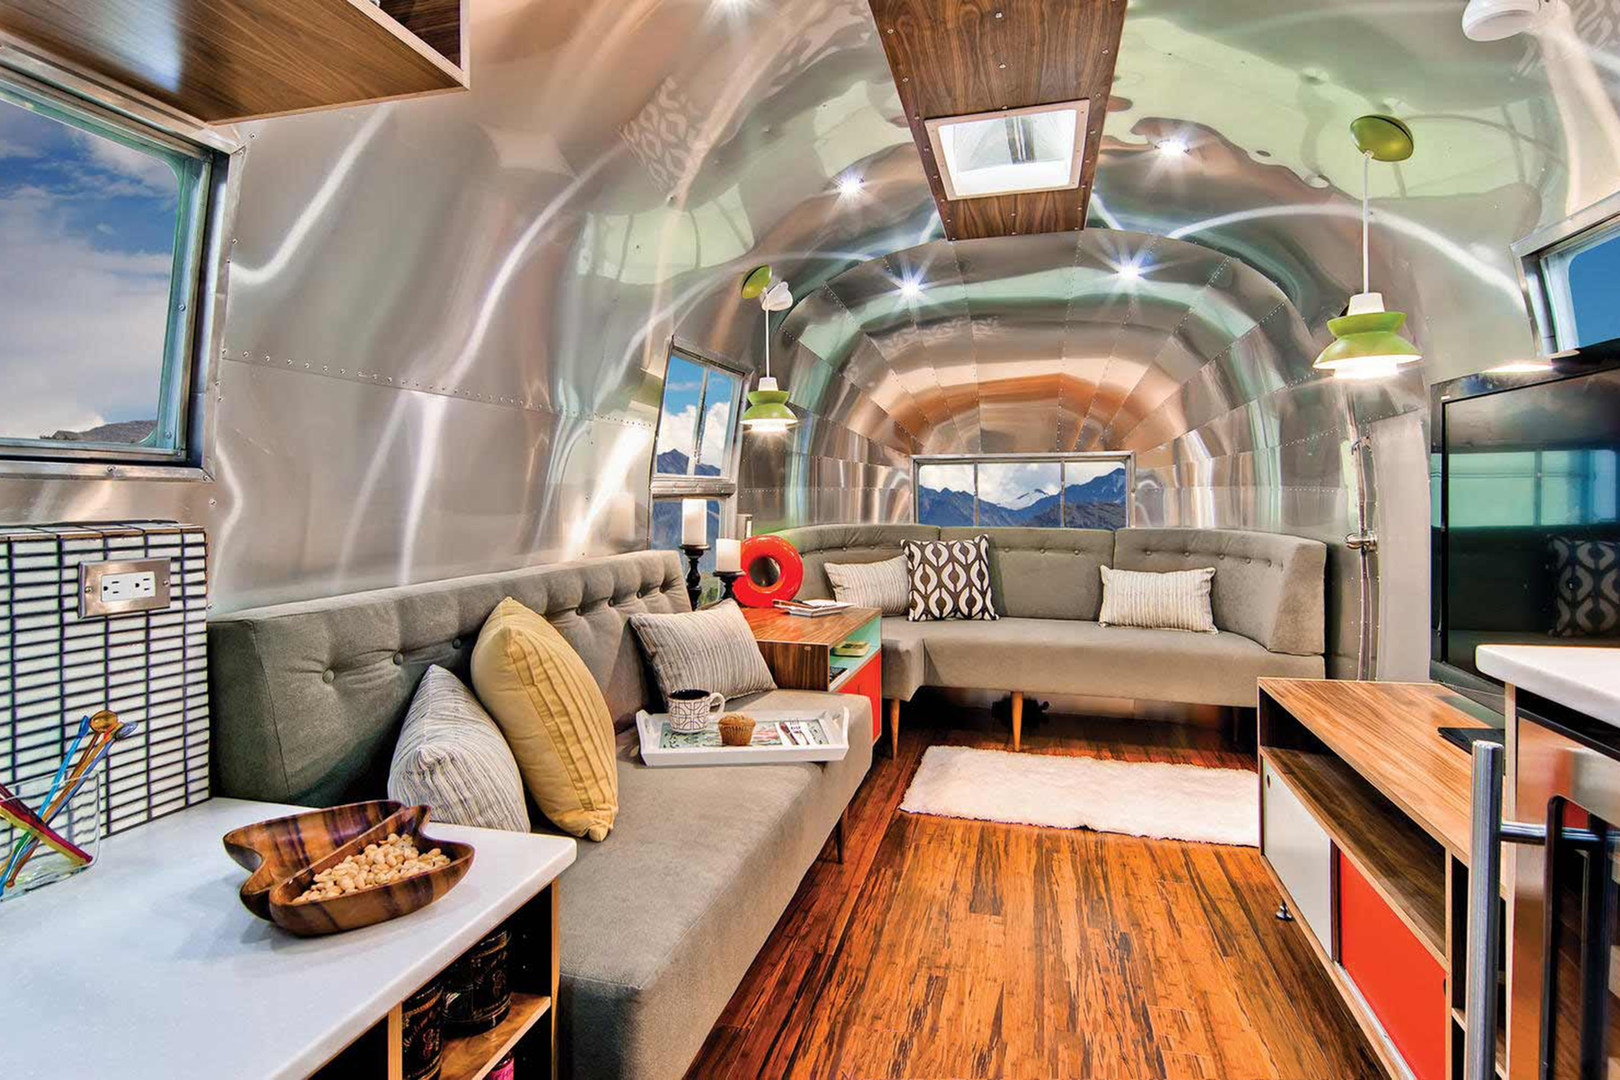 The Best Camper Vans Classic Airstream Photo Courtesy Of Timeless Travel Trailers Vans